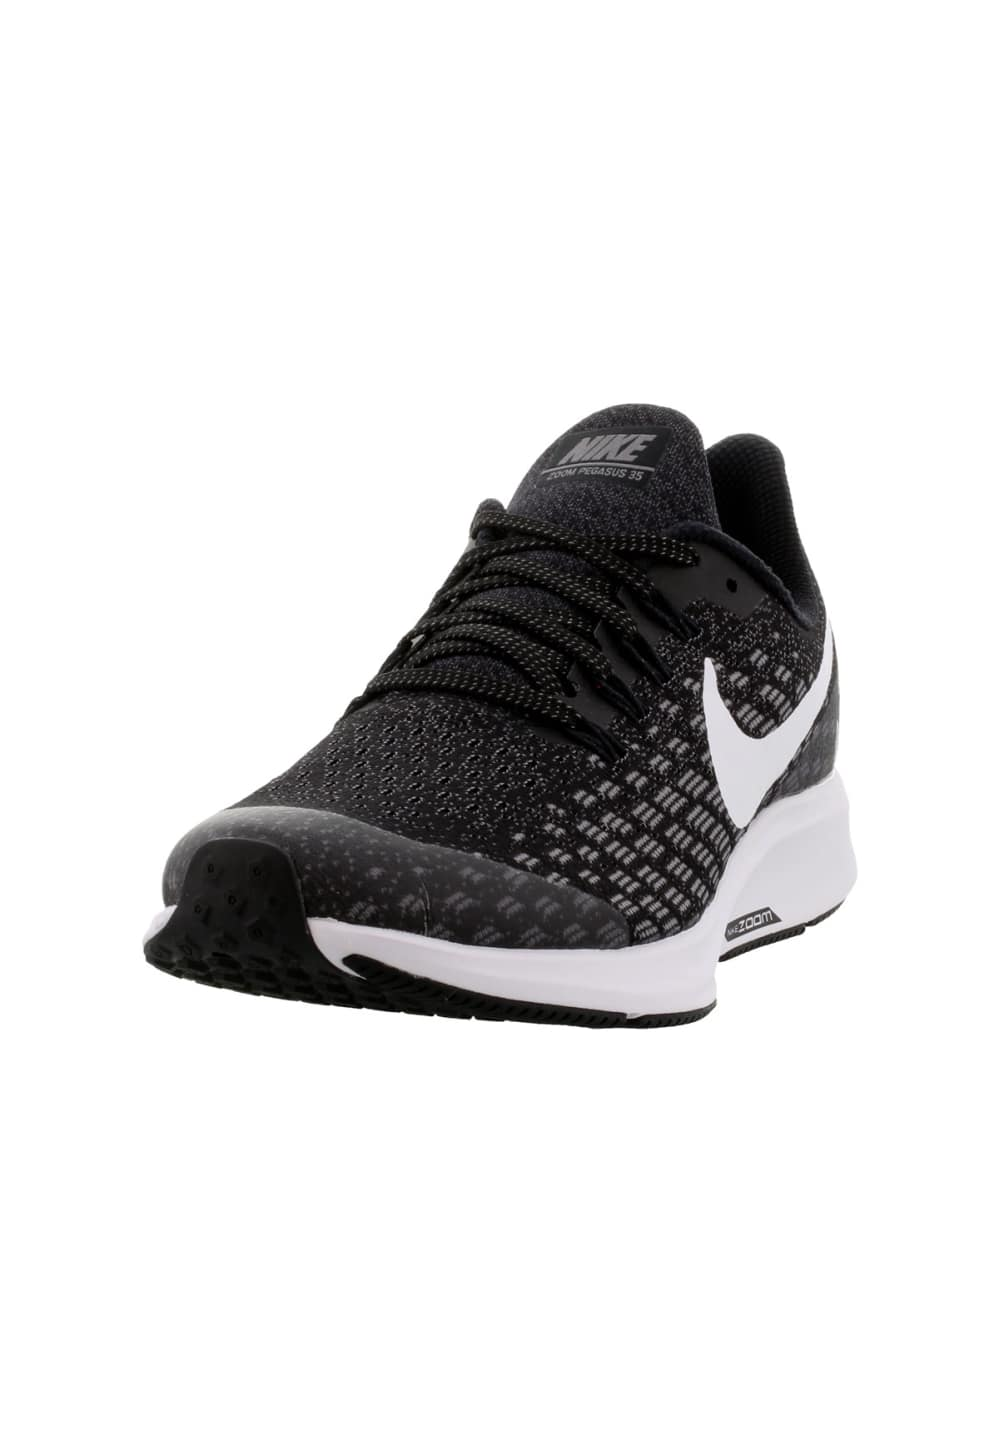 big sale 3c15b 685c6 Nike Air Zoom Pegasus 35 - Running shoes - Black